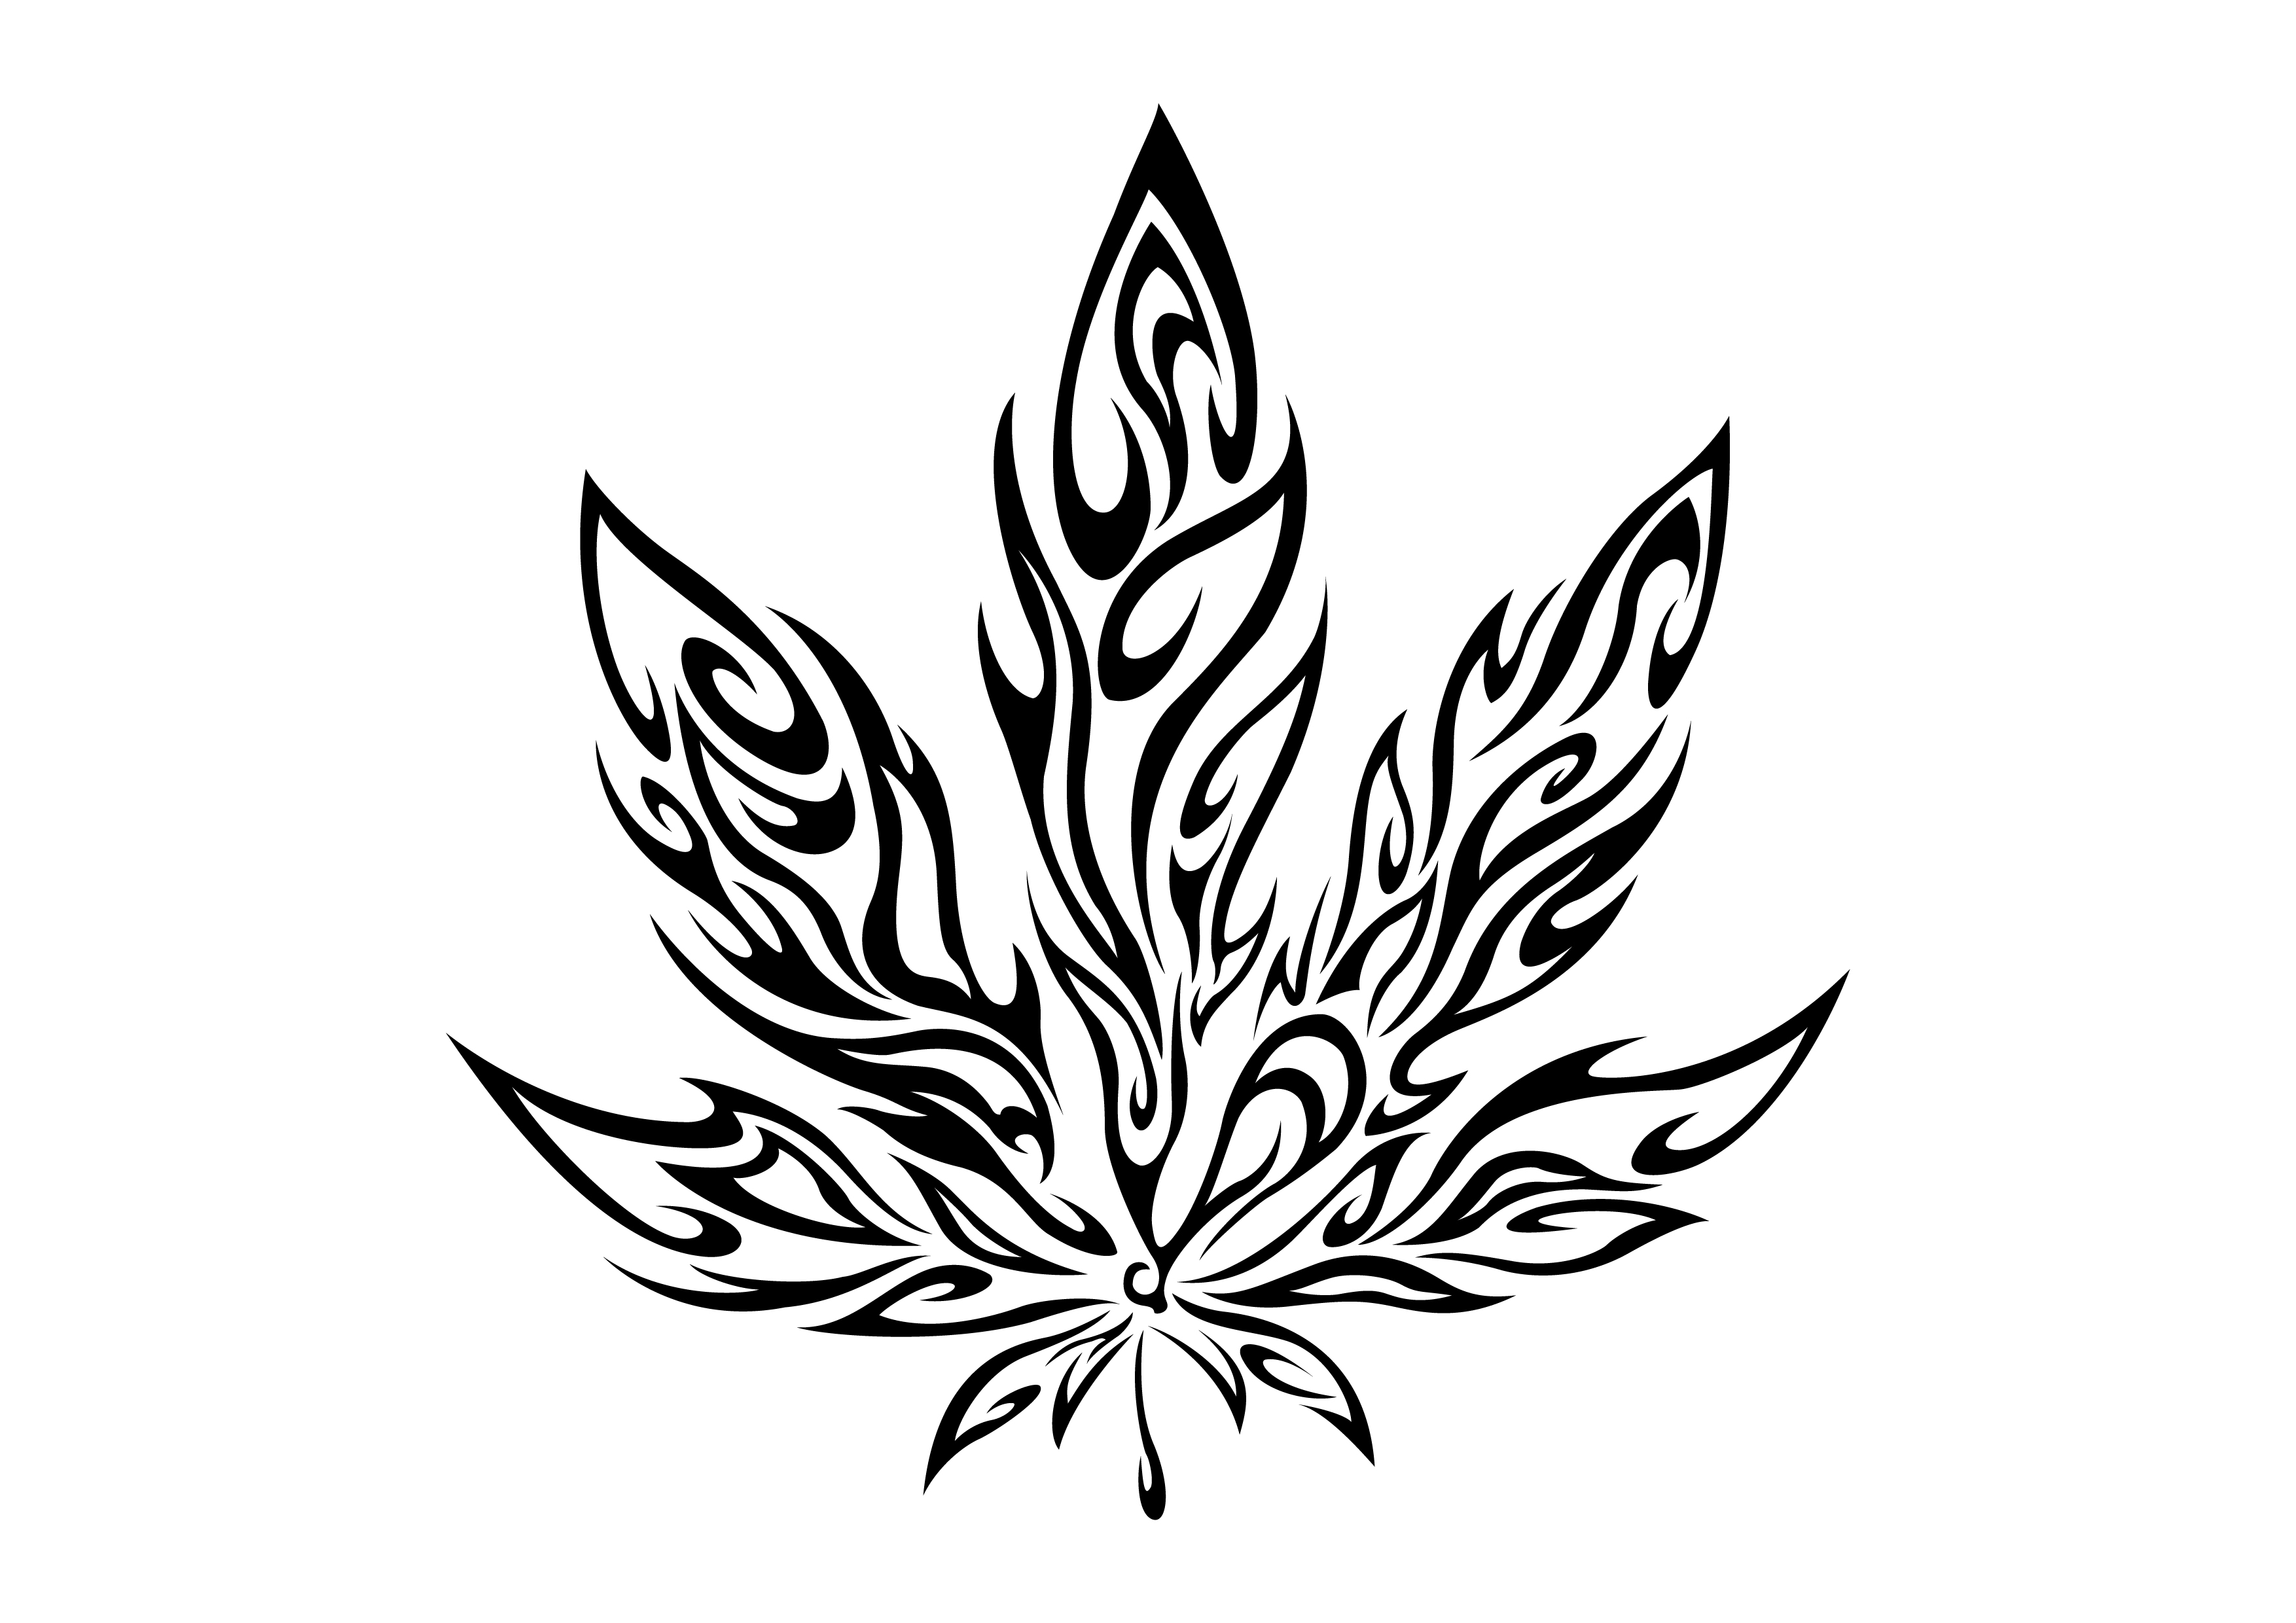 Drawn pot plant leaf stencil Drawing Net pot Vectors Pot